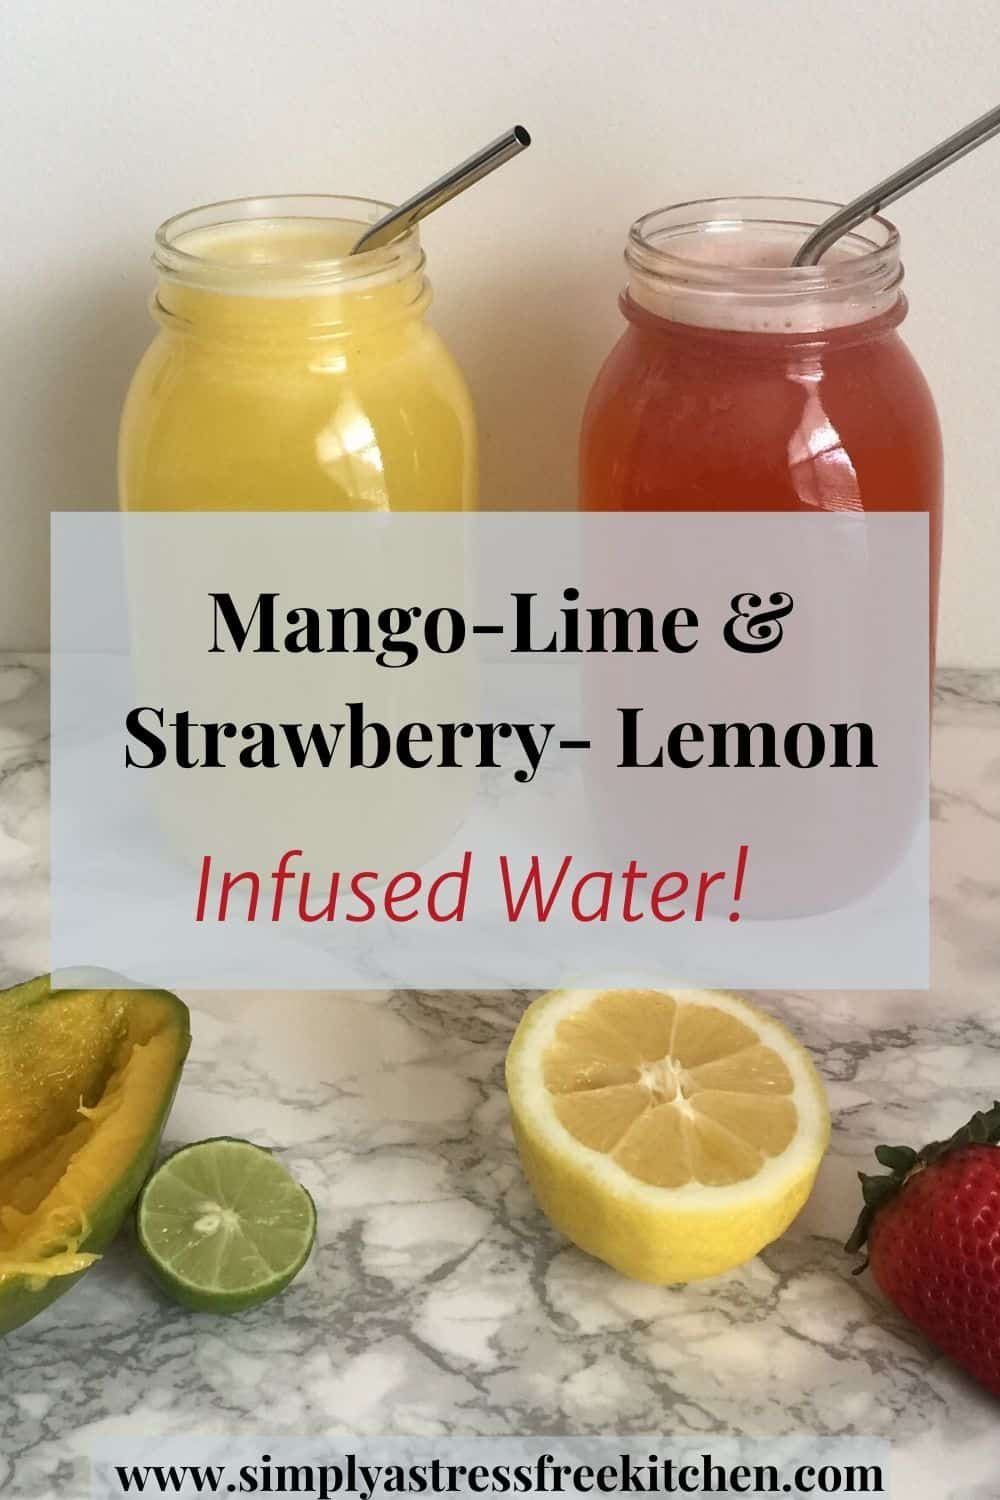 Want to spice up your water? Learn how to make mango-lime and strawberry-lemon fruit infused water! These combinations are so delicious! #healthyliving #strawberryinfusedwater #infusedwater